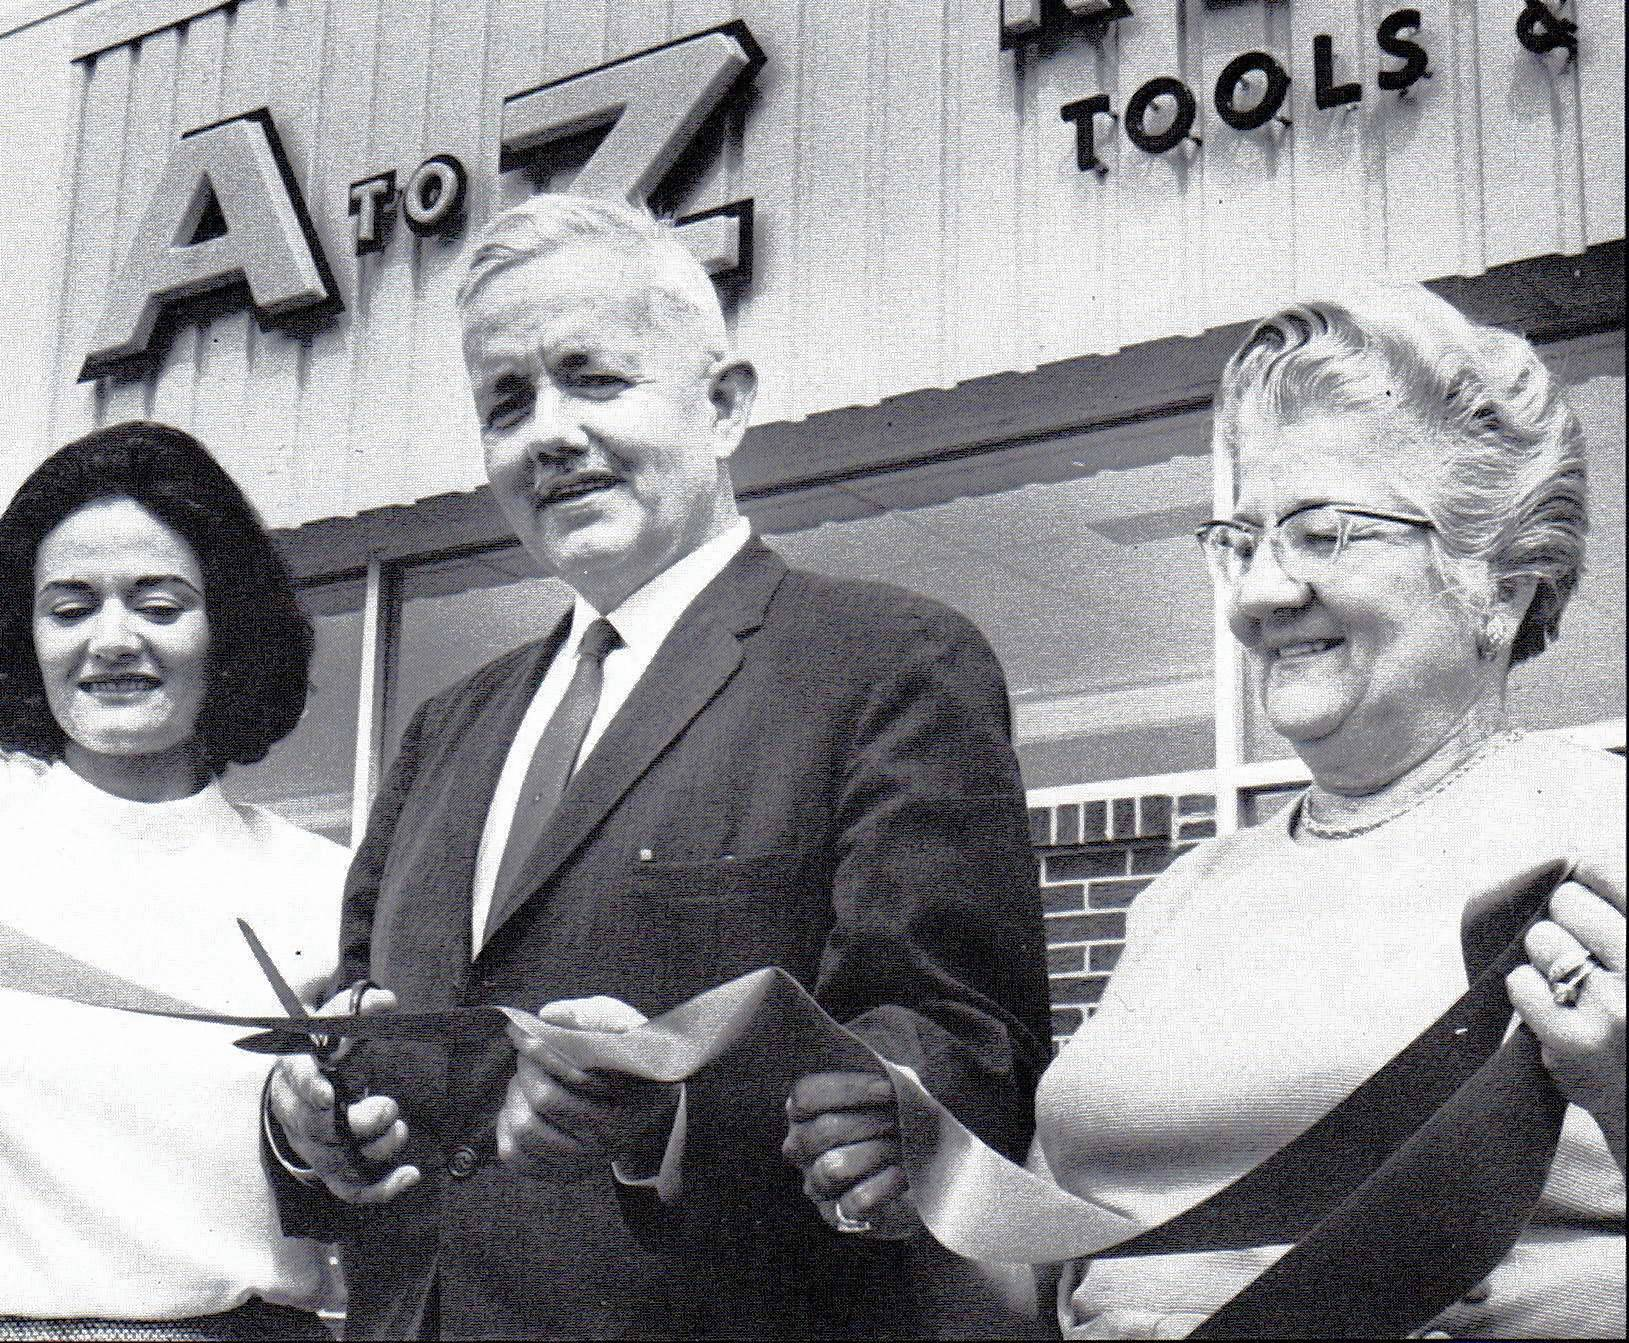 Daniel Congreve, center, was mayor of Mount Prospect from 1965 to 1969.